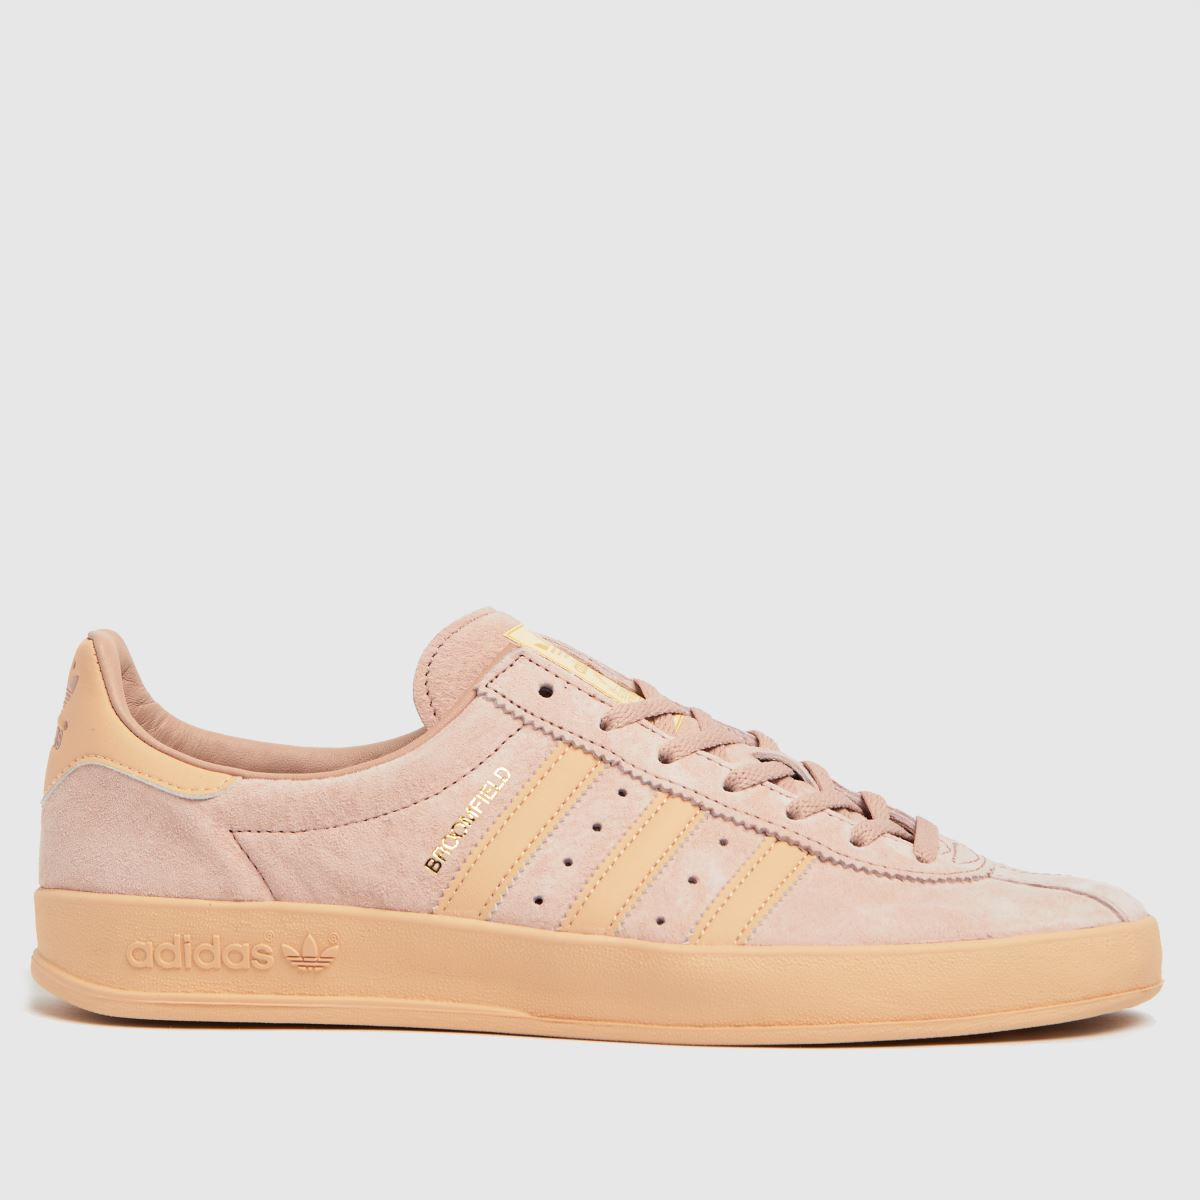 Adidas Pale Pink Broomfield Trainers